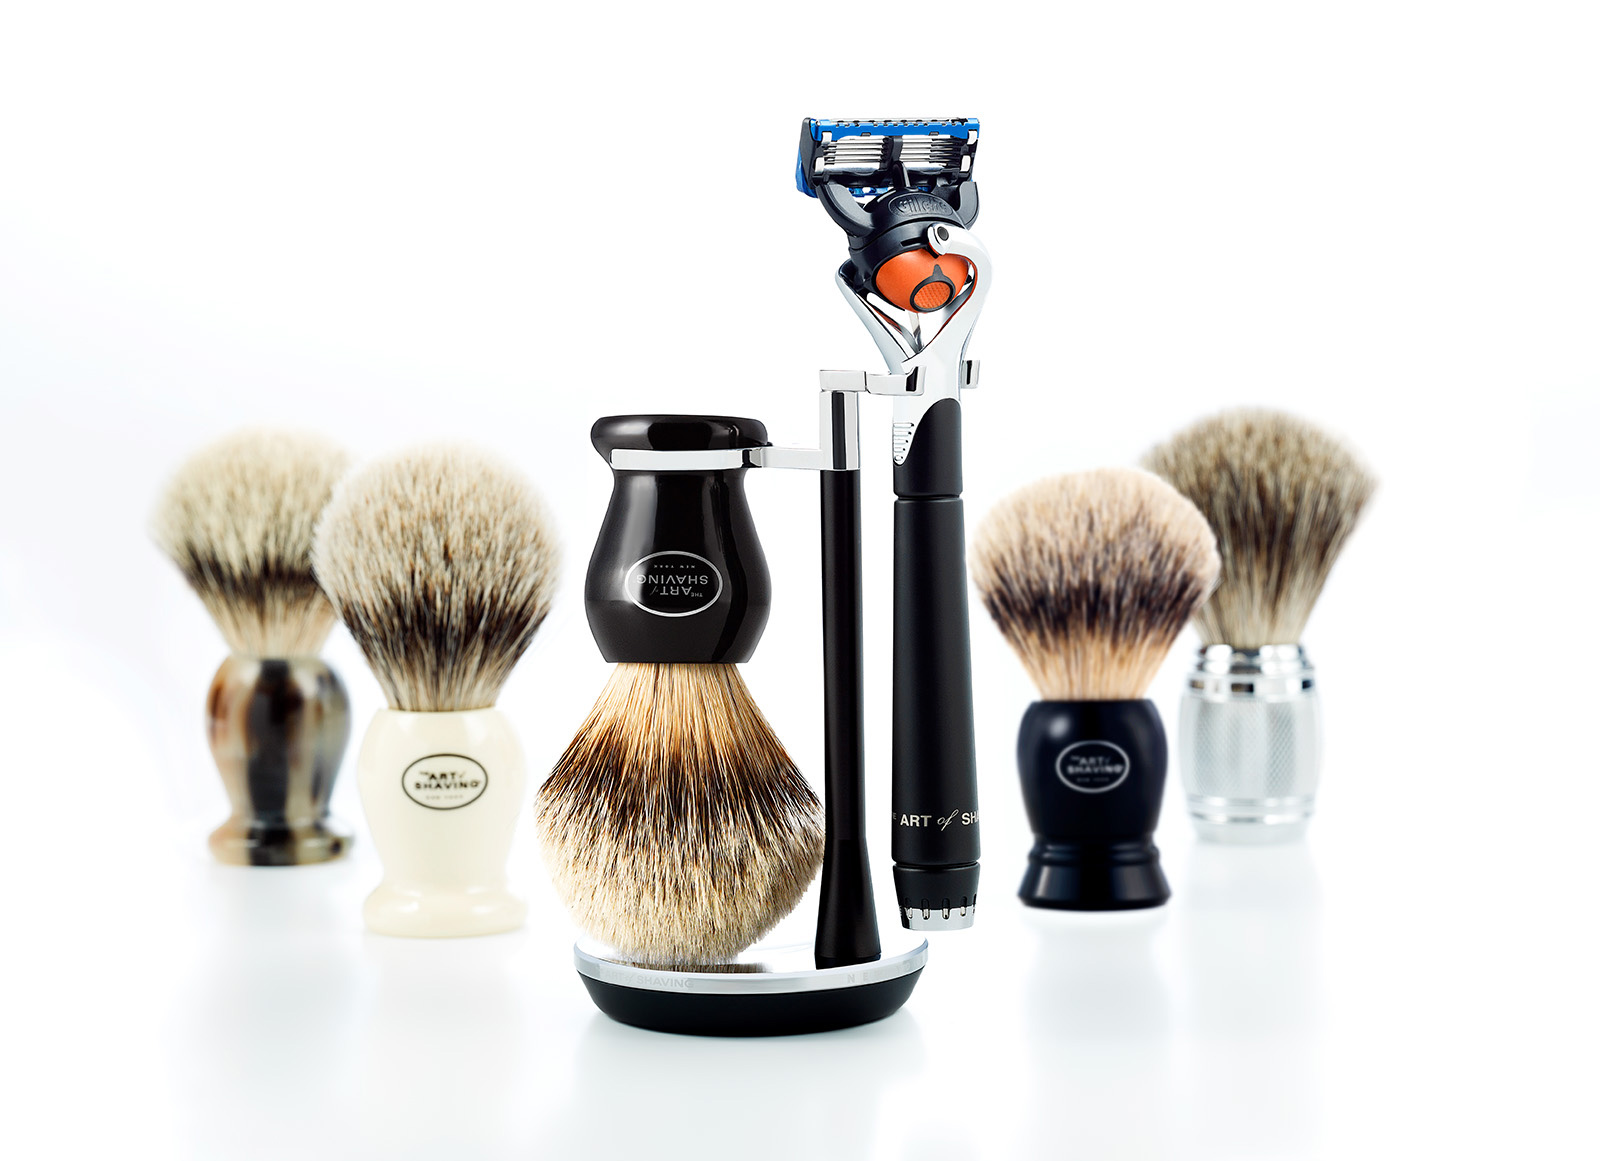 Advertising Product Photography The Art of Shaving / www.theartofshaving.com